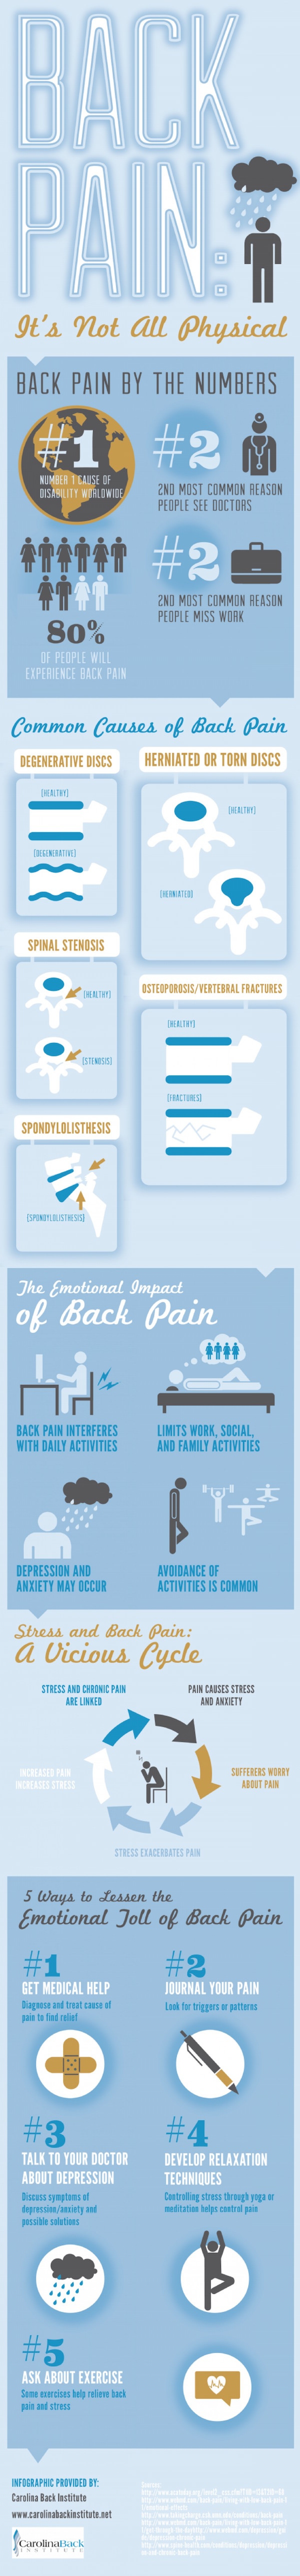 the emotional impact of back pain